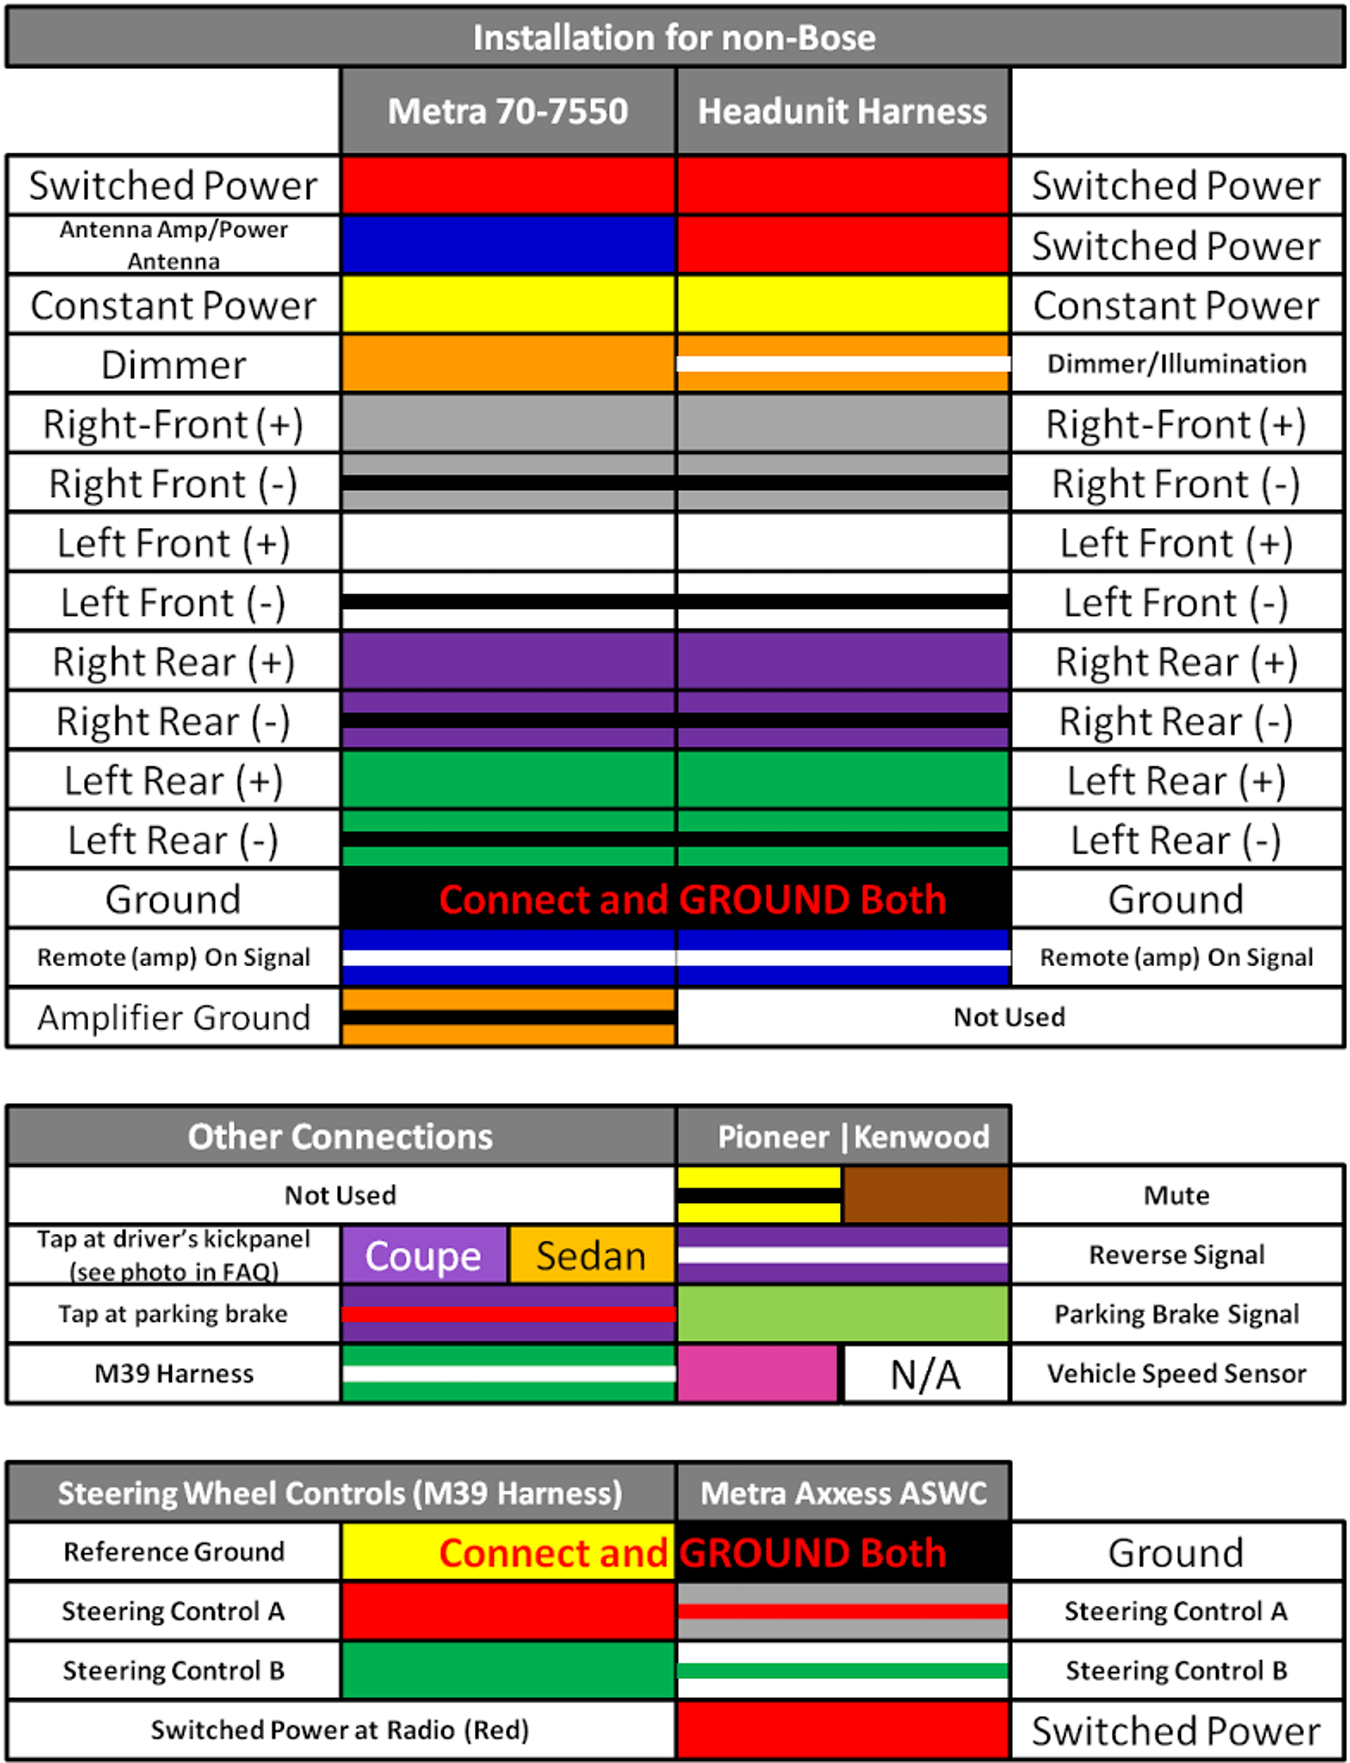 [SCHEMATICS_4ER]  Unique Automotive Wiring Diagram Color Codes #diagram #wiringdiagram  #diagramming #Diagramm #visuals #visualisation … | Pioneer radio, Kenwood  radio, Kenwood stereo | Alpine Radio Wiring Diagram Colors |  | Pinterest